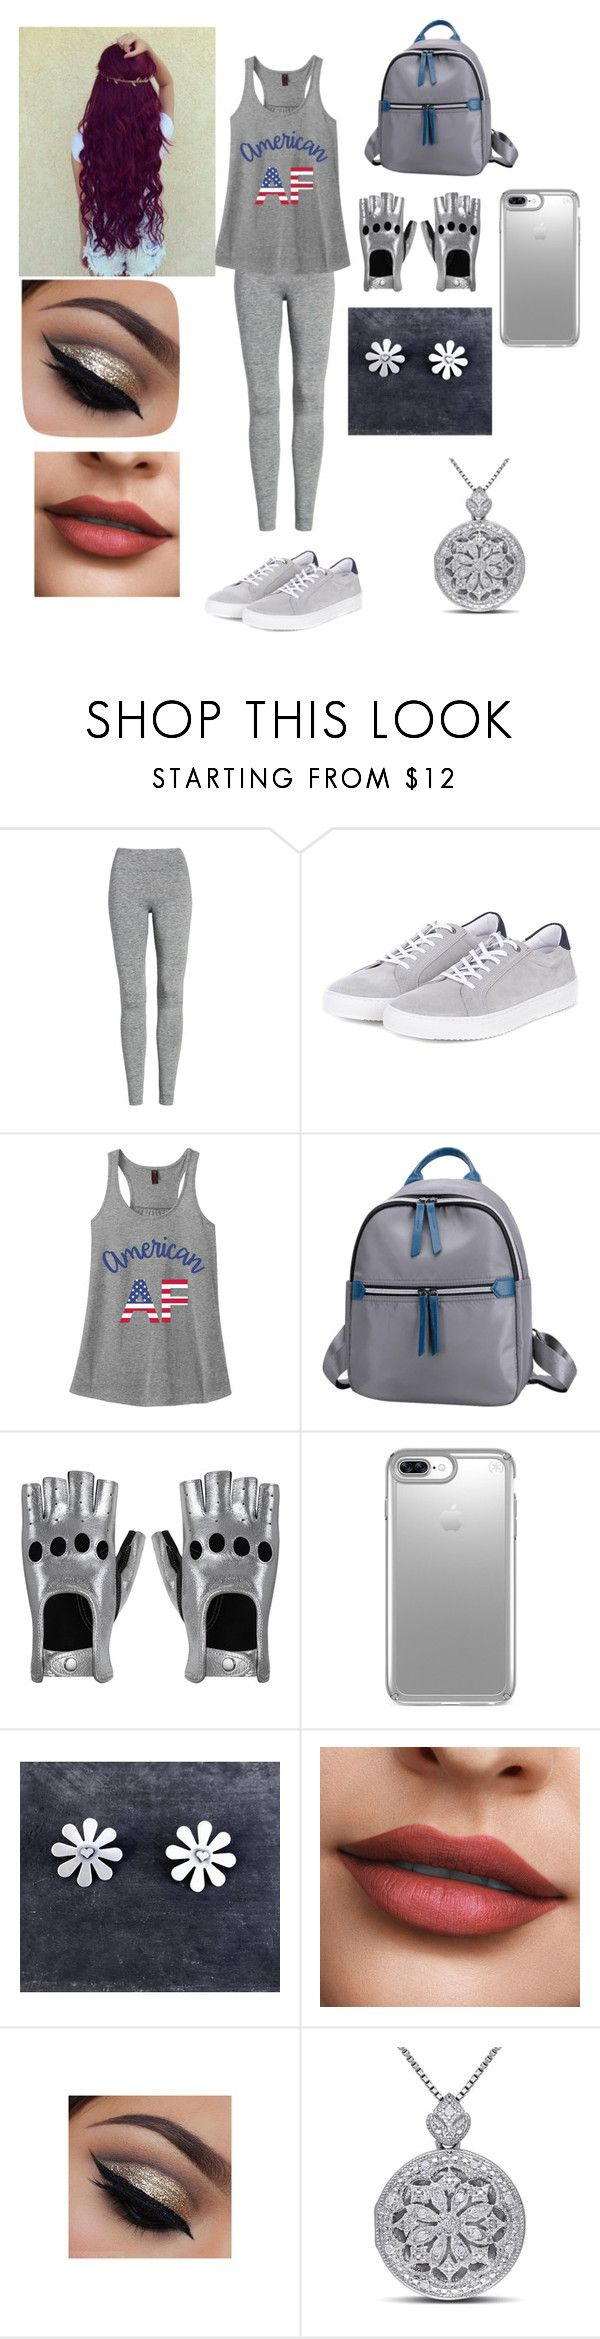 """Untitled #76"" by skyepicness on Polyvore featuring Treasure & Bond, Barbour, Manokhi, Speck and Miadora"